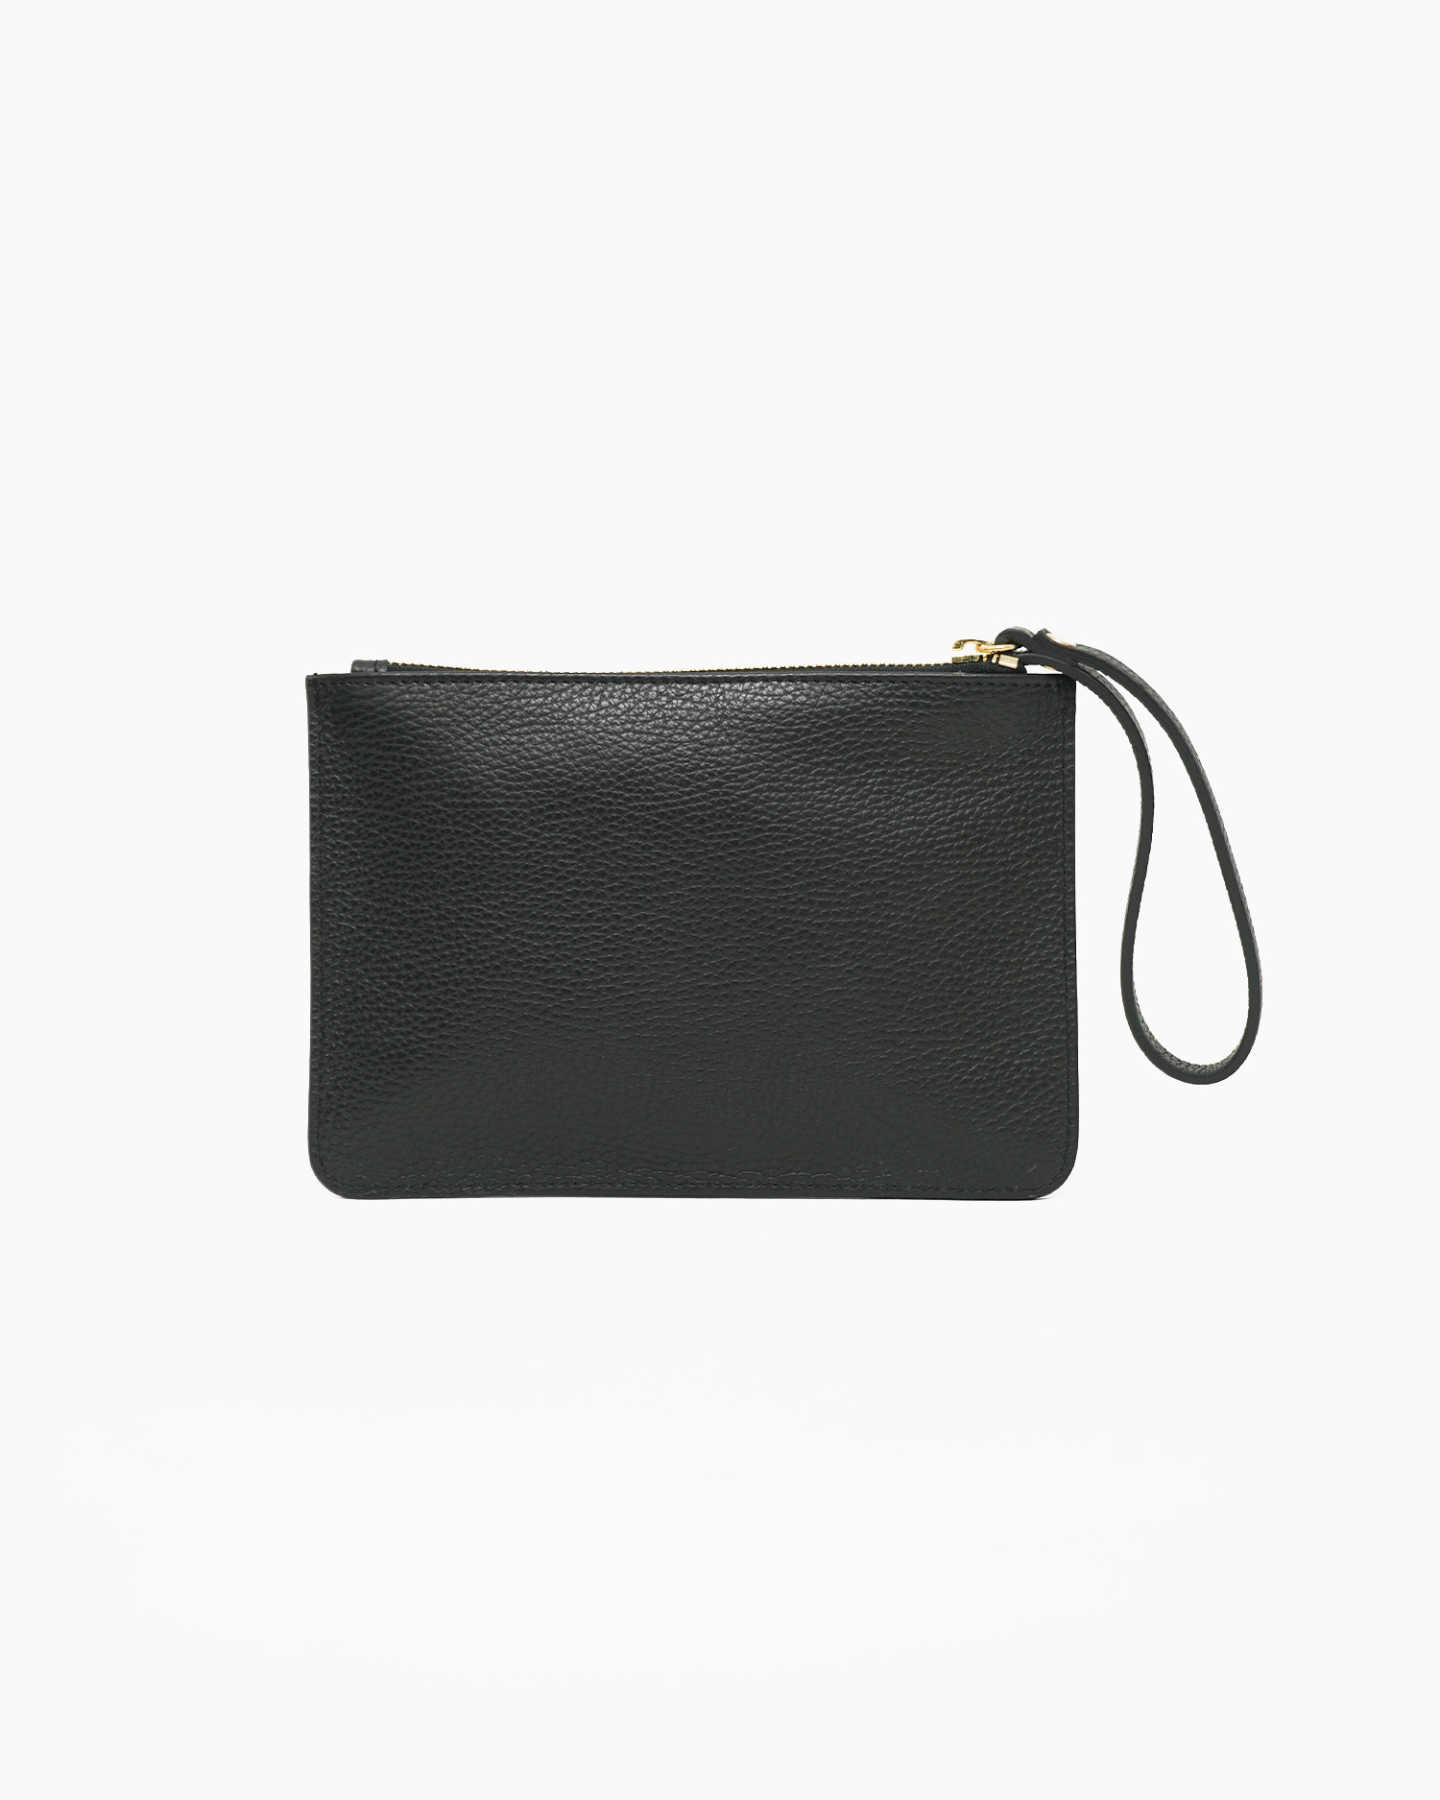 Italian Pebbled Leather Wristlet - Black